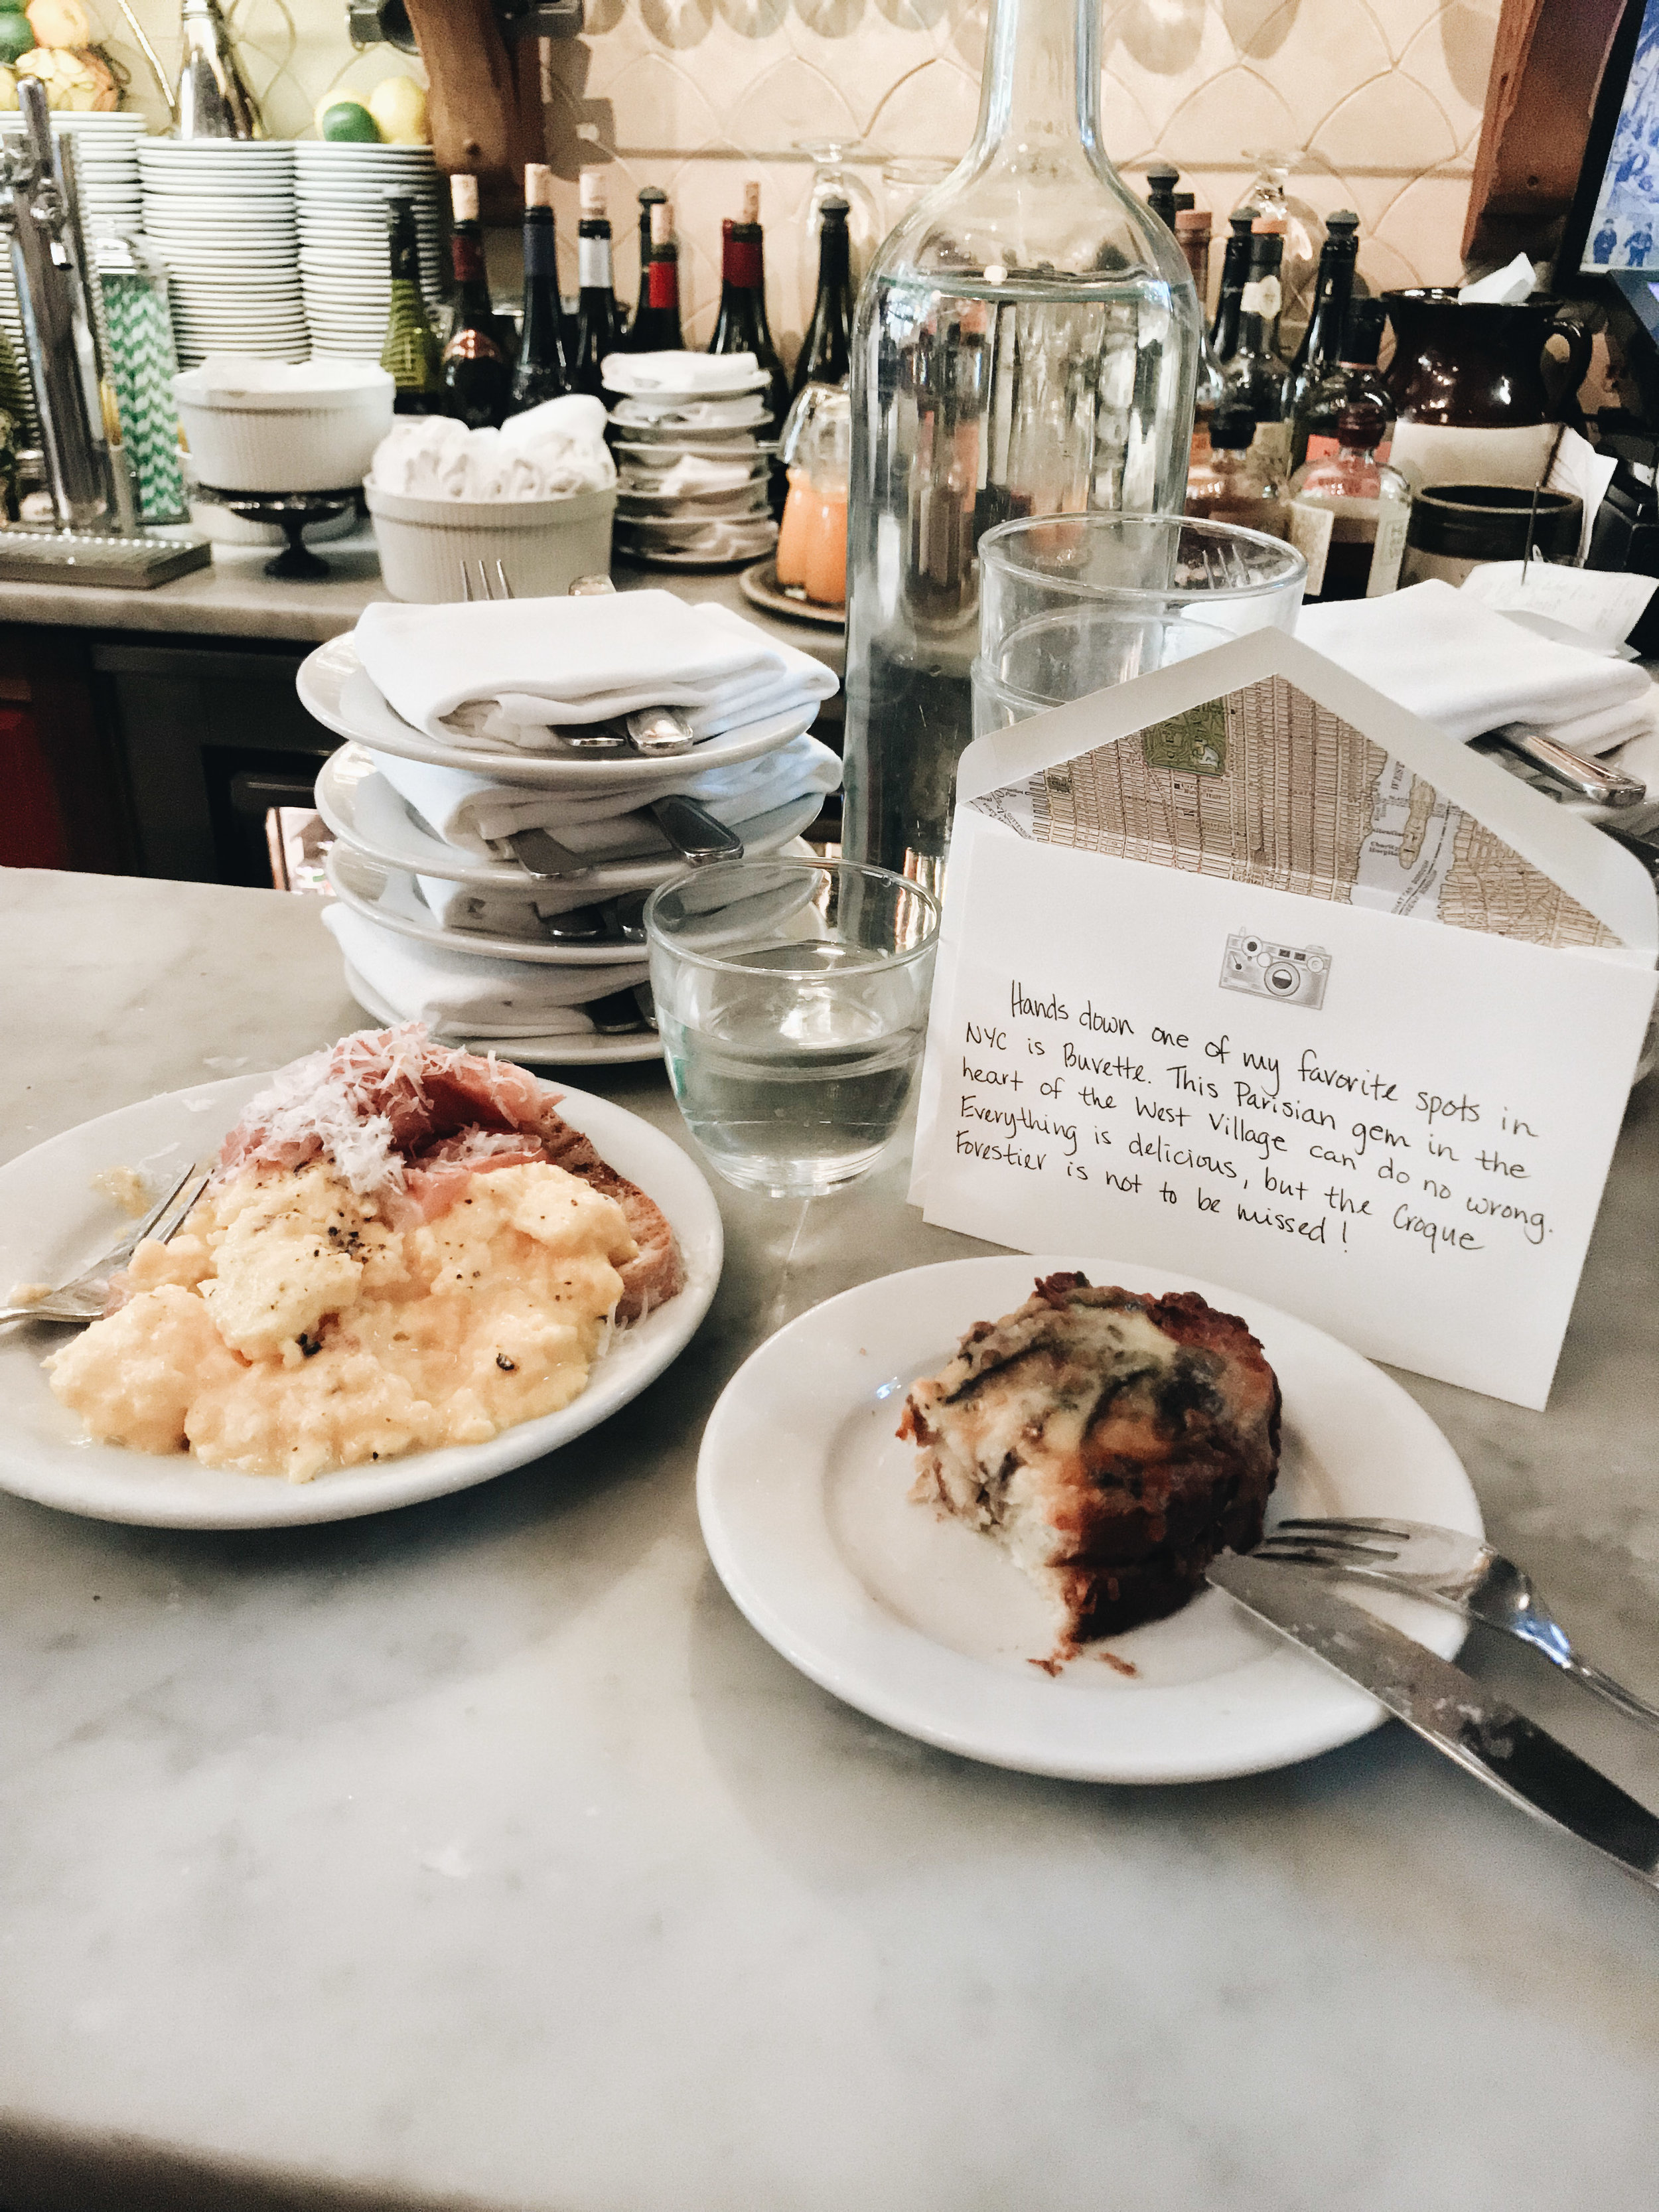 A Brunch Not to Be Missed - (Buvette, West Village)